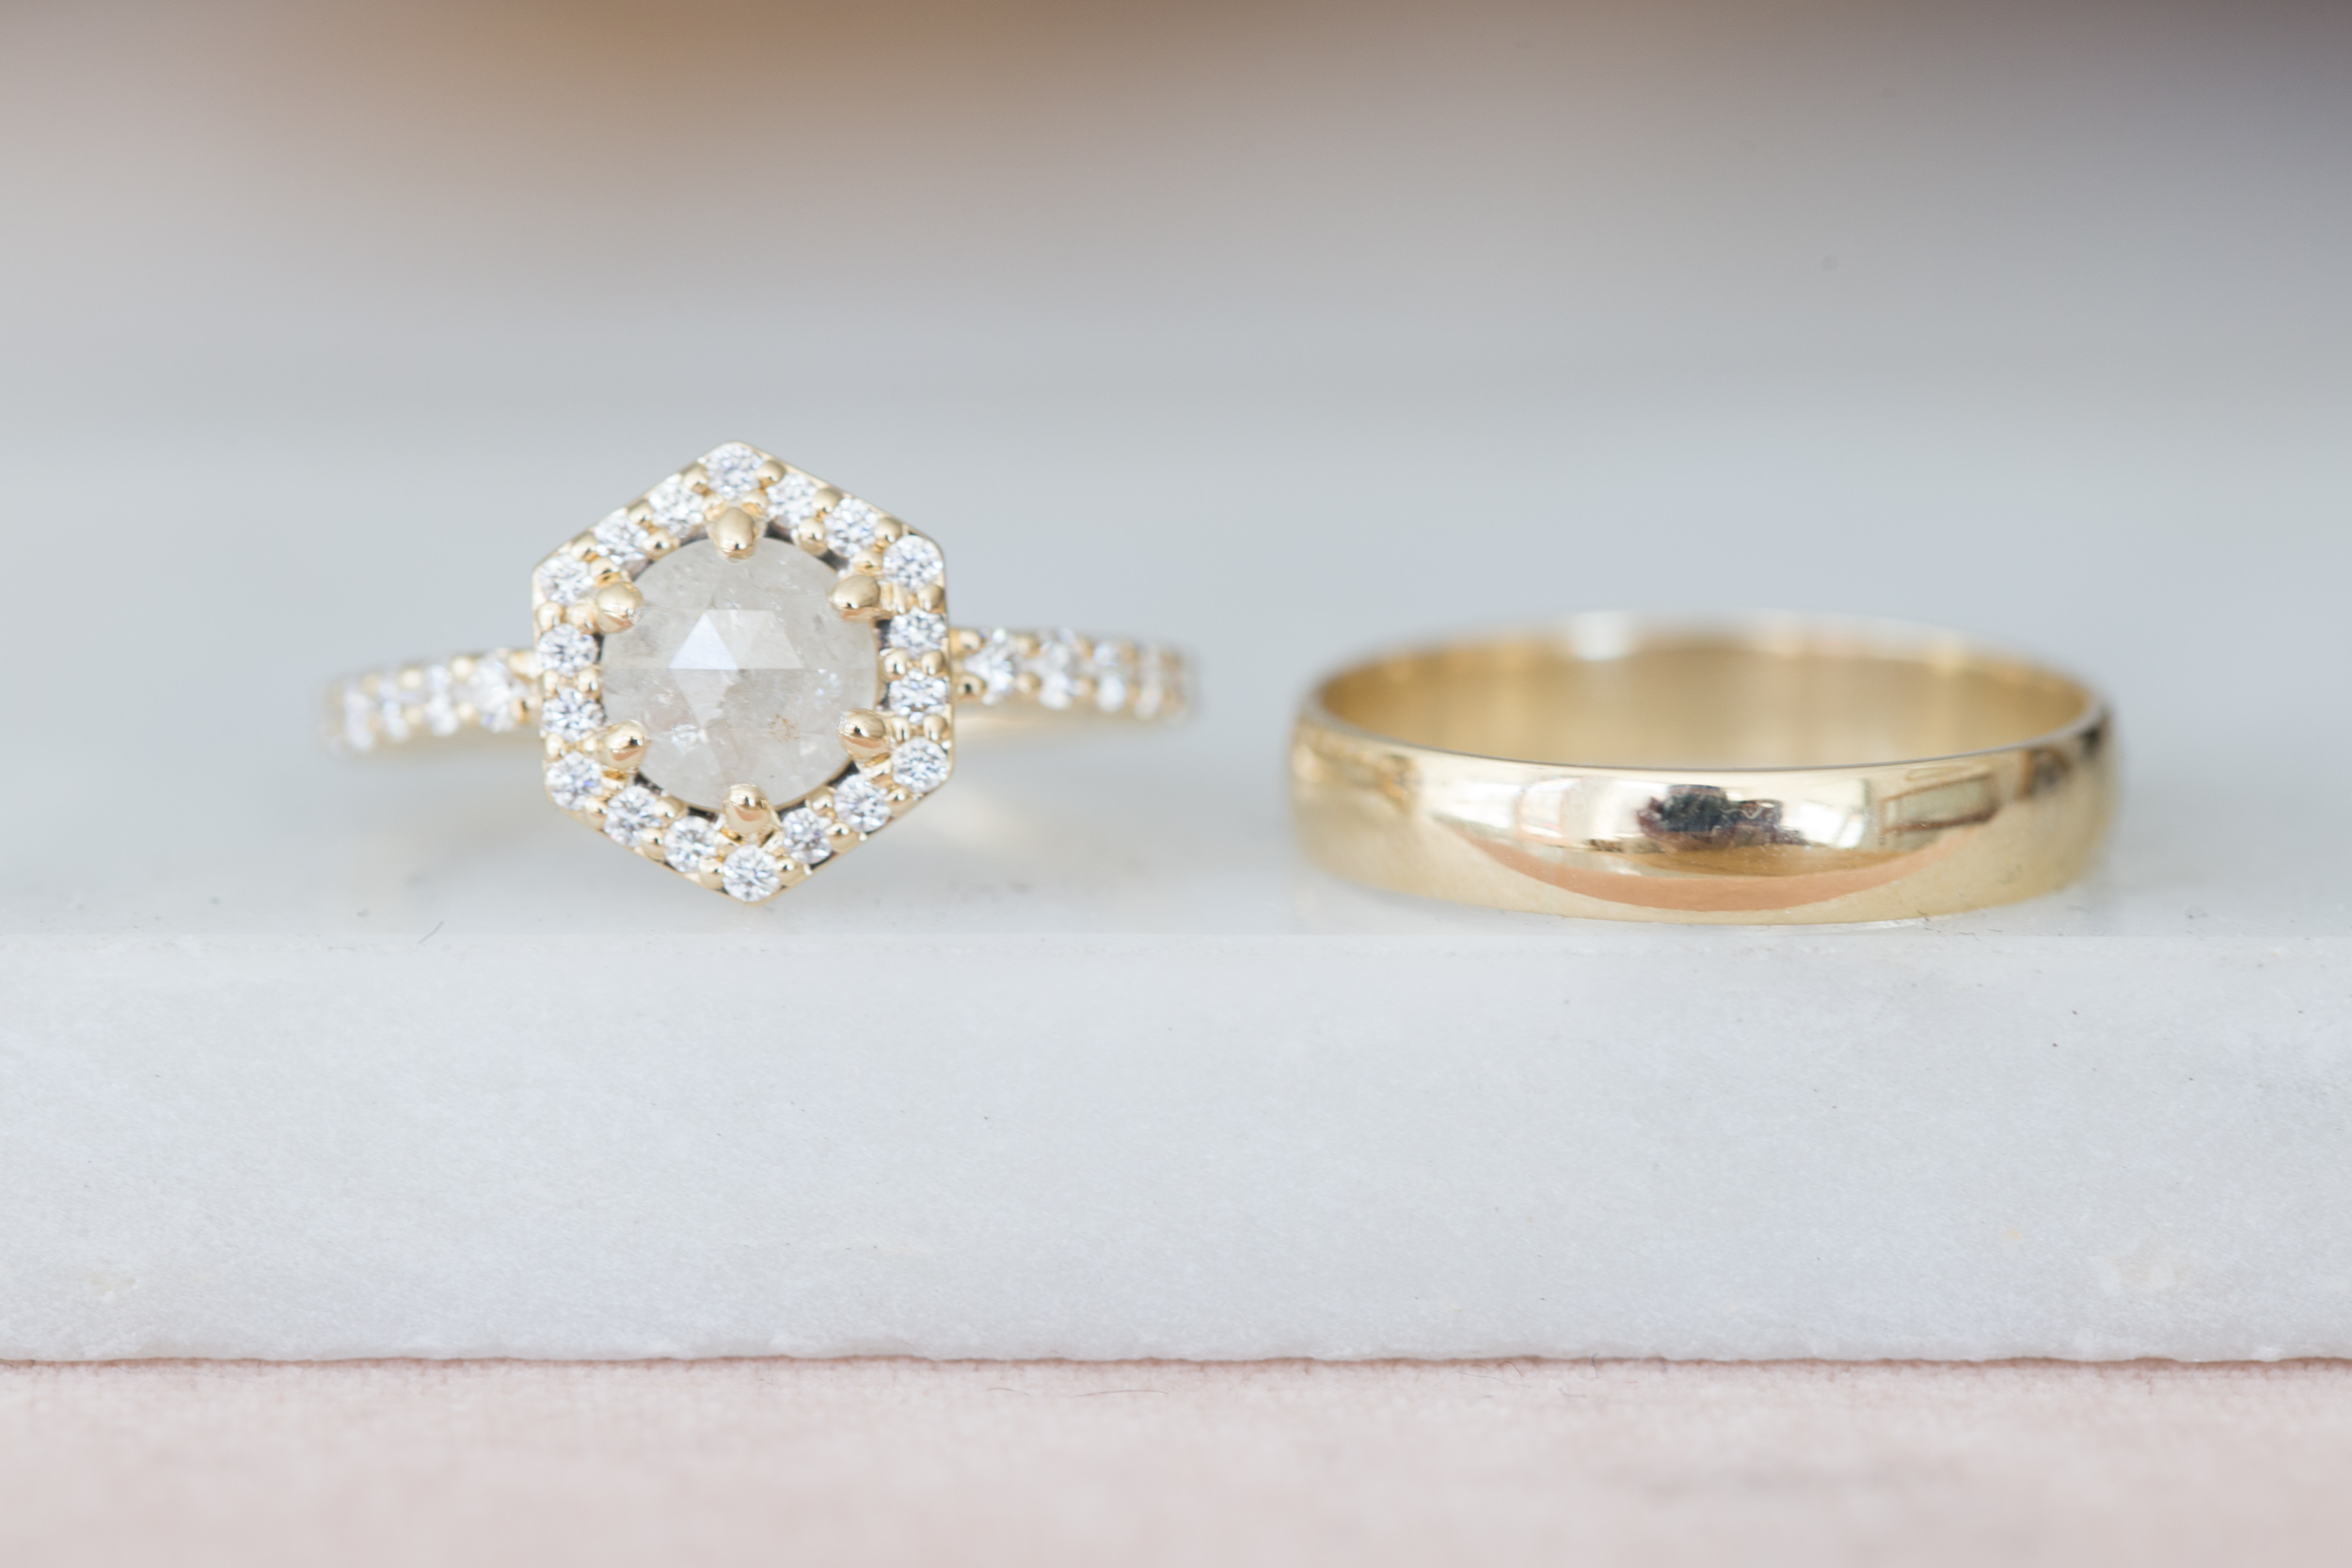 Kerry S. Hexagon Ring-3.jpg